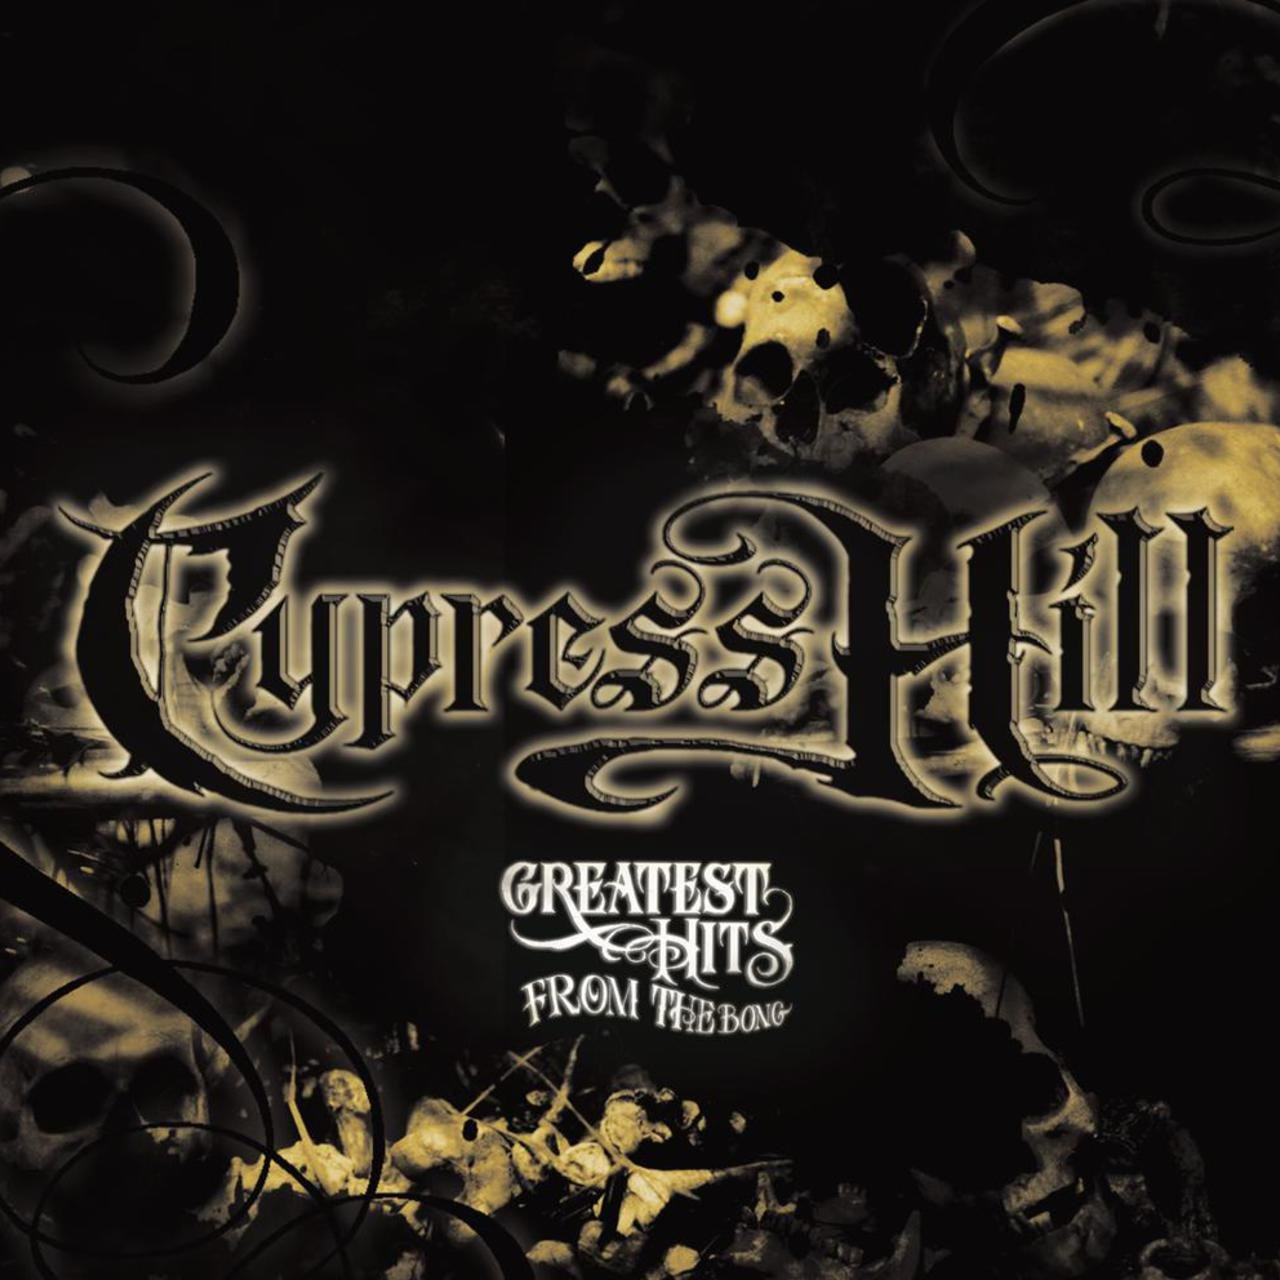 Cypress hill greatest hits from the bong album download.